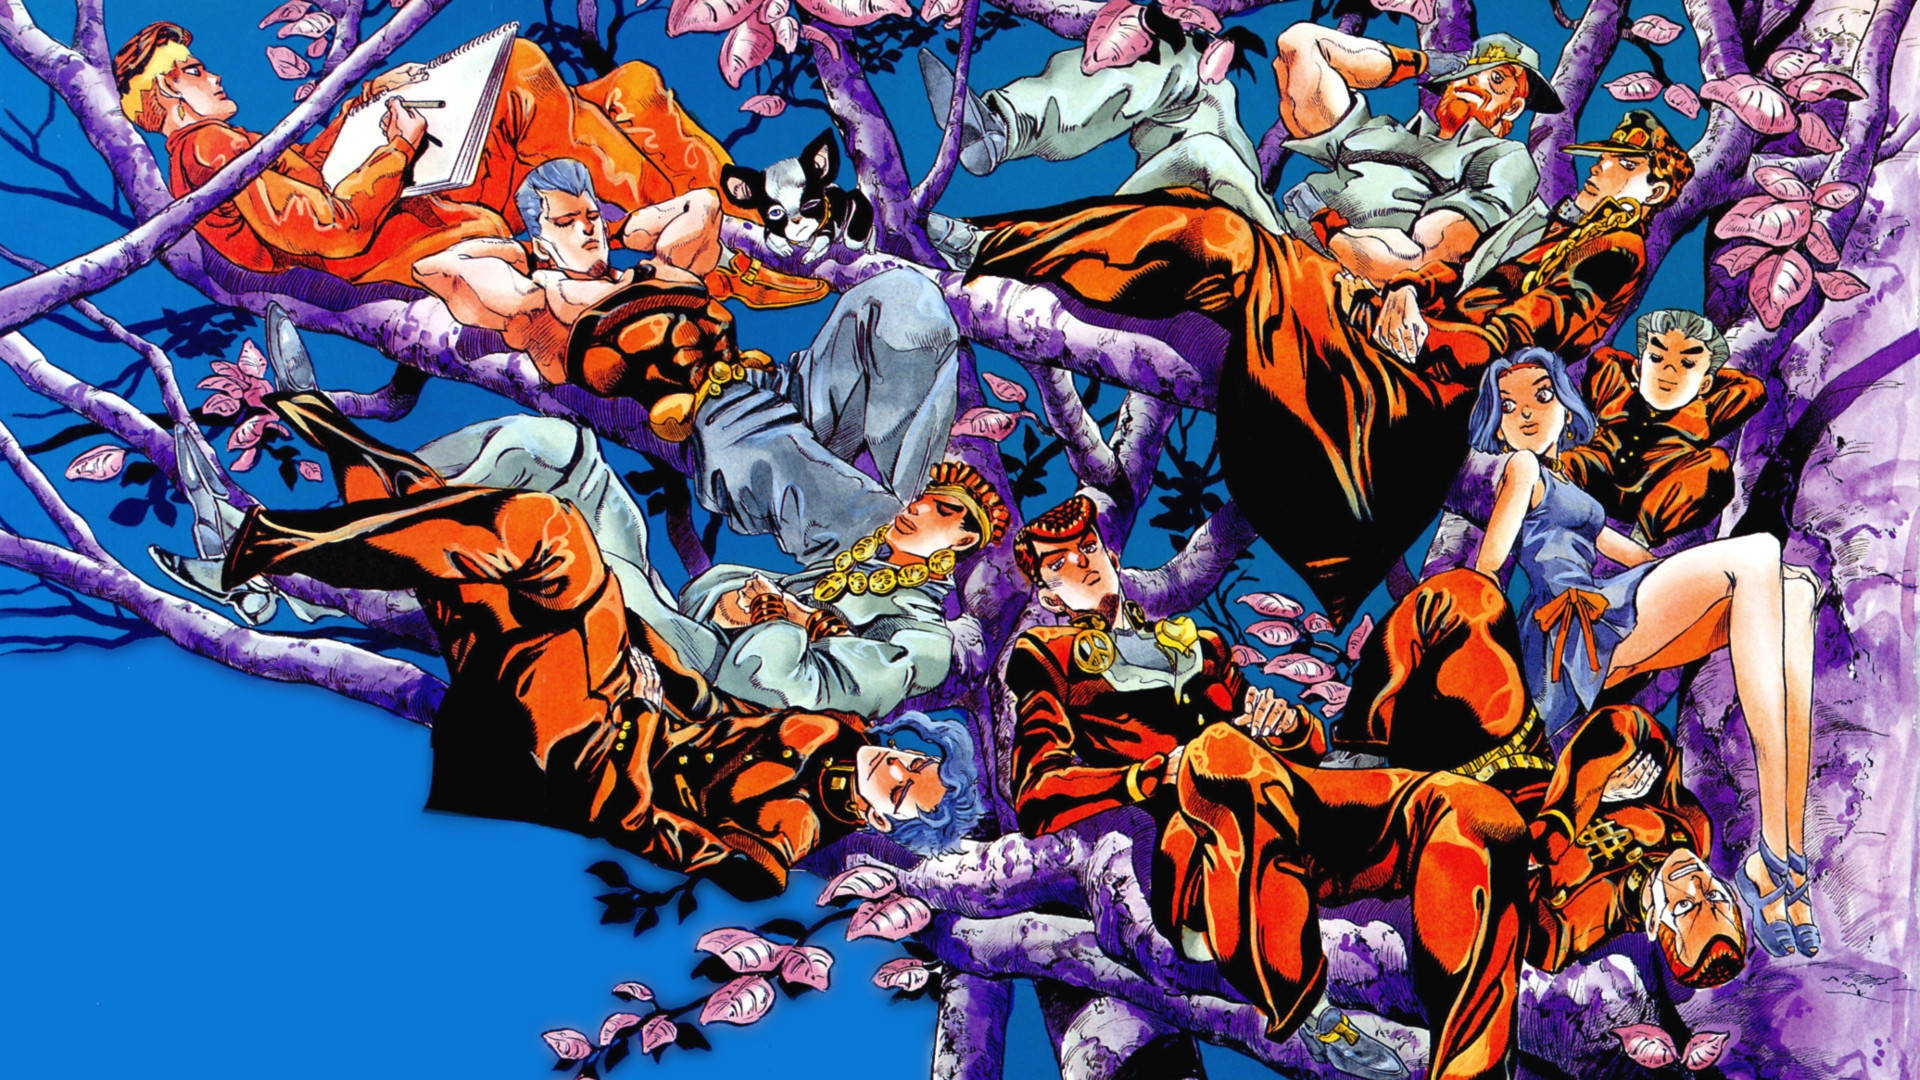 Jojos Bizarre Adventure Wallpapers and Background Images   stmednet 1920x1080